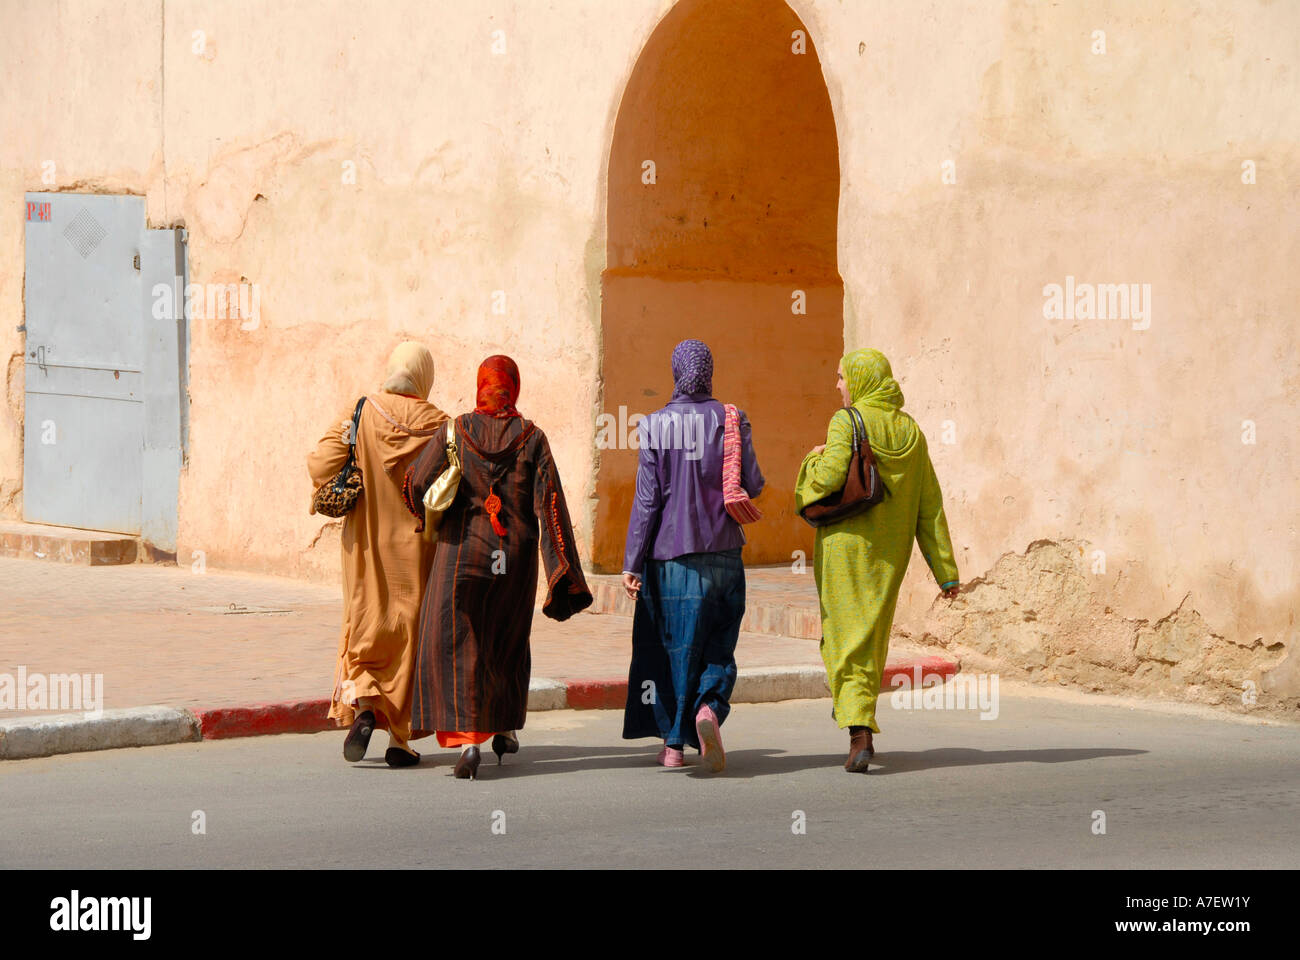 Tradition and modernity four women dressed colourfully at gate Meknes Morocco - Stock Image